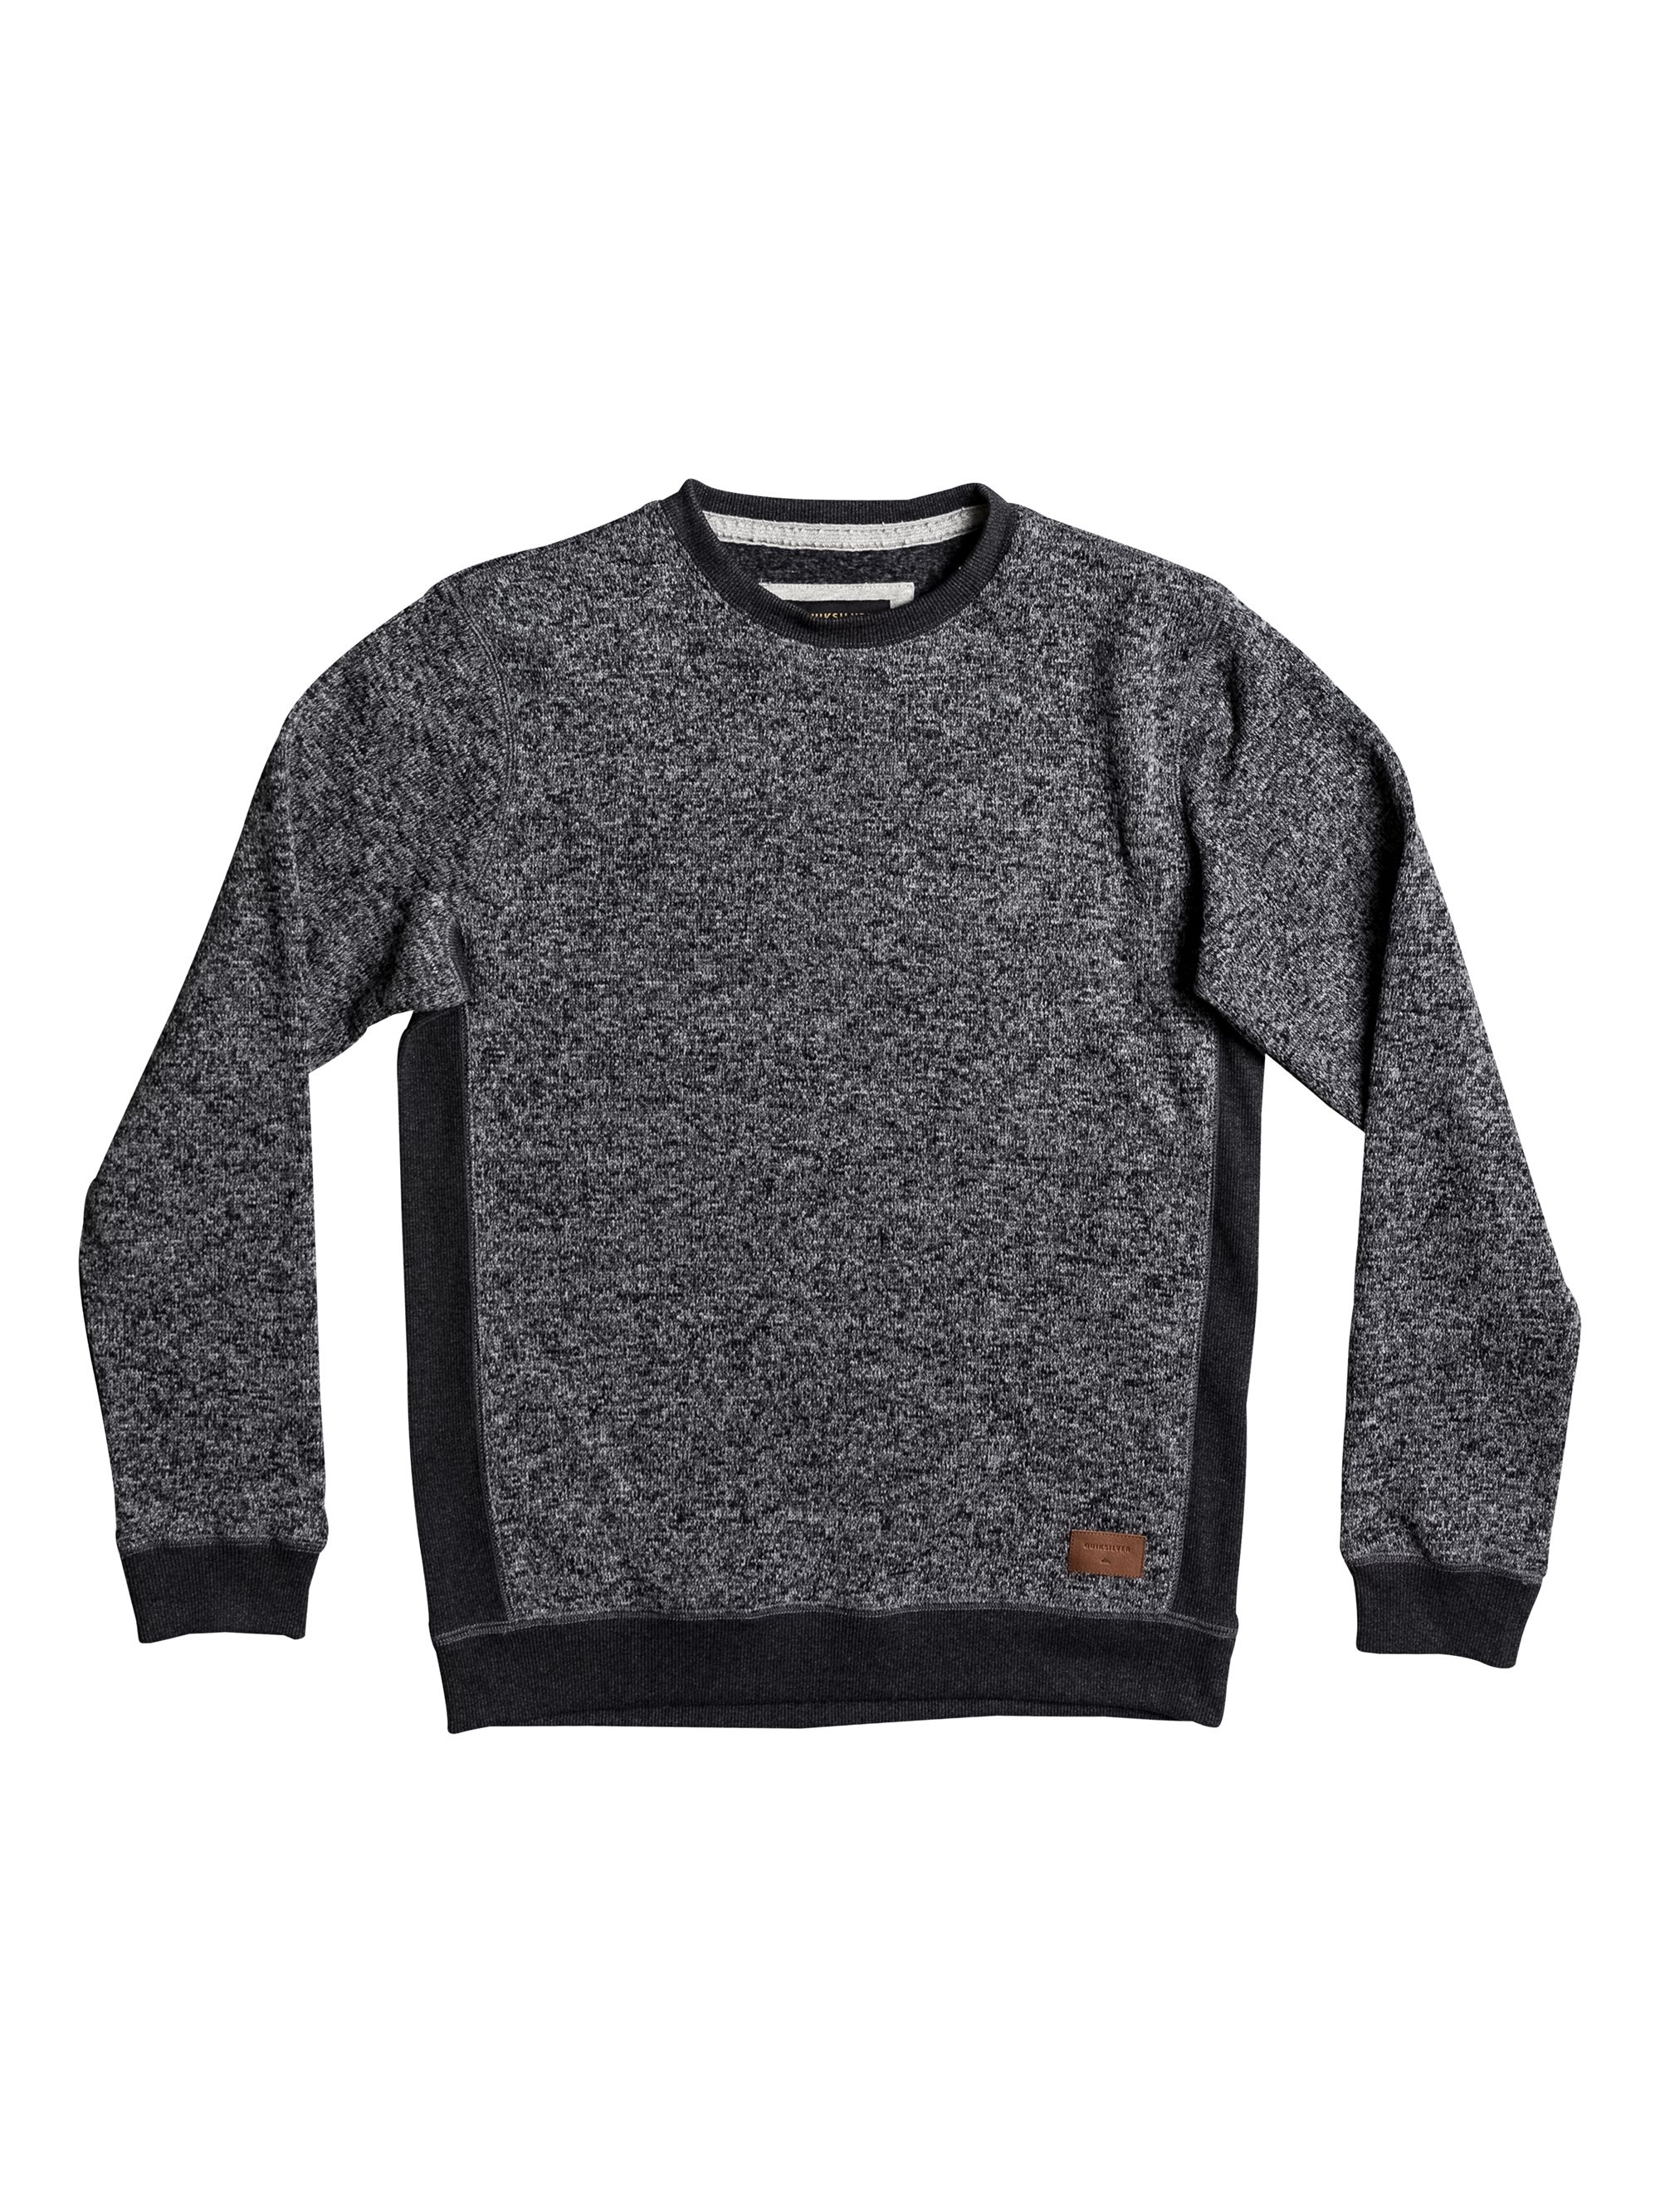 Men's Quiksilver Quiksilver Keller Fleece Sweatshirt, Charcoal